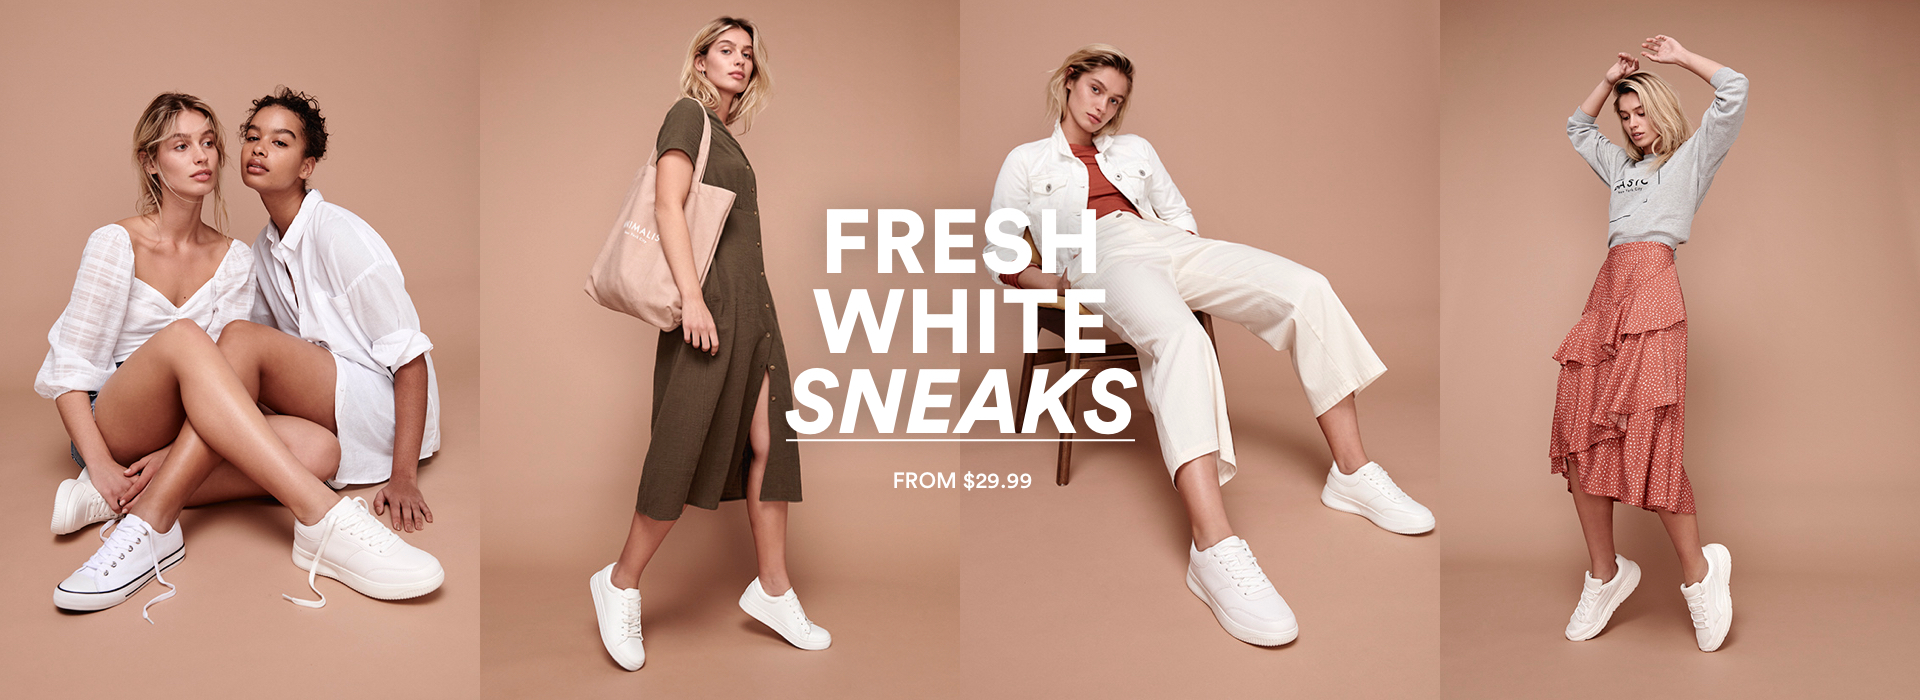 Fresh white sneakers from $29.99.